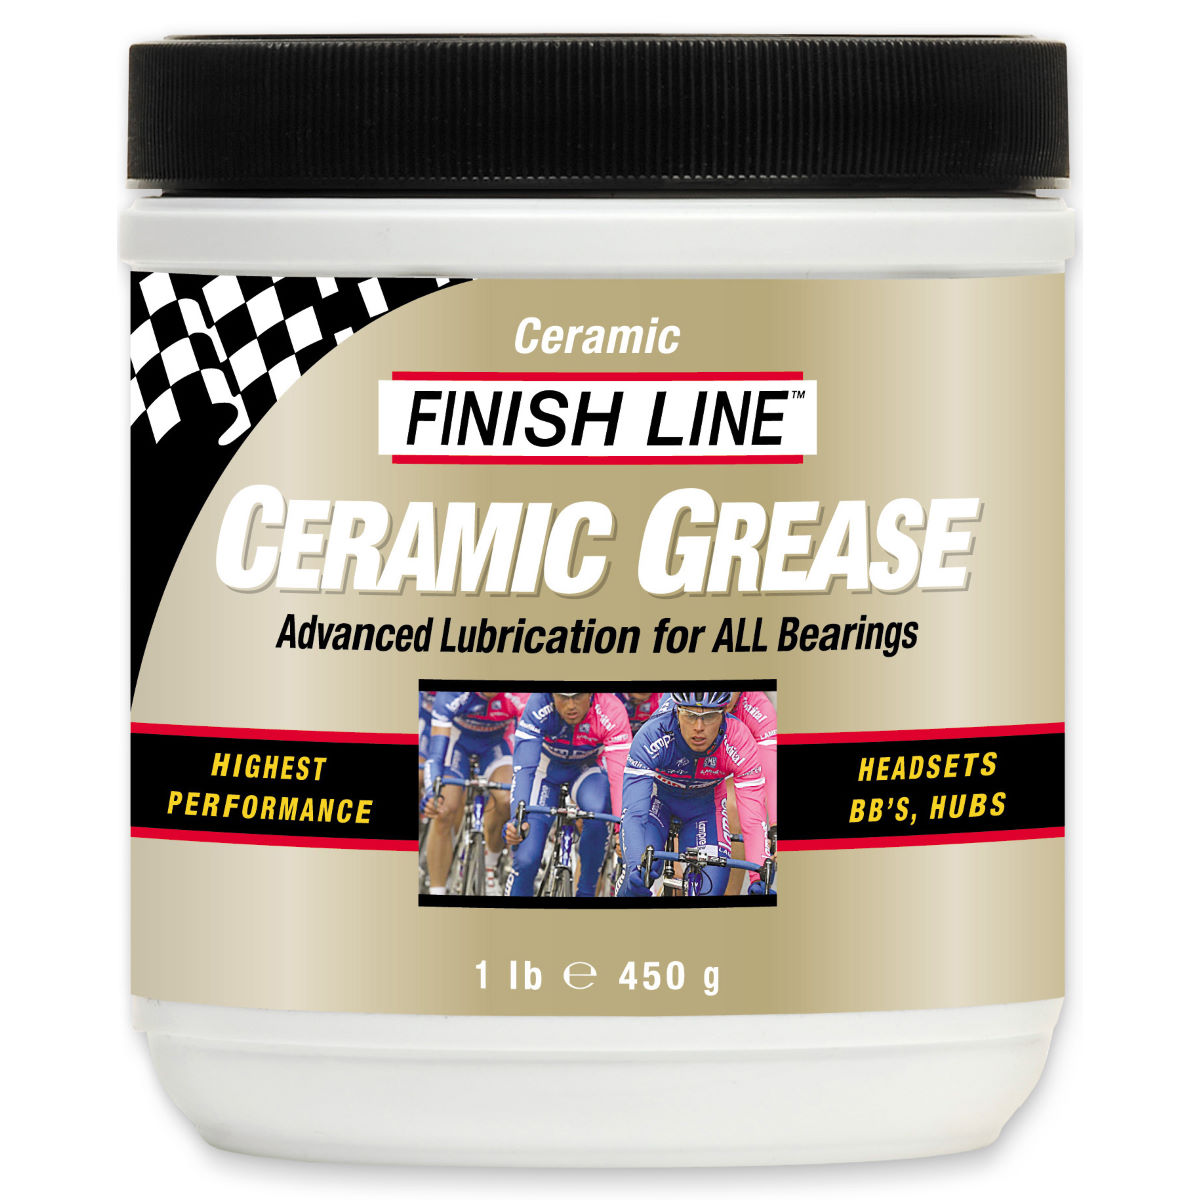 Tube de graisse céramique Finish Line 60 g - 401-500g